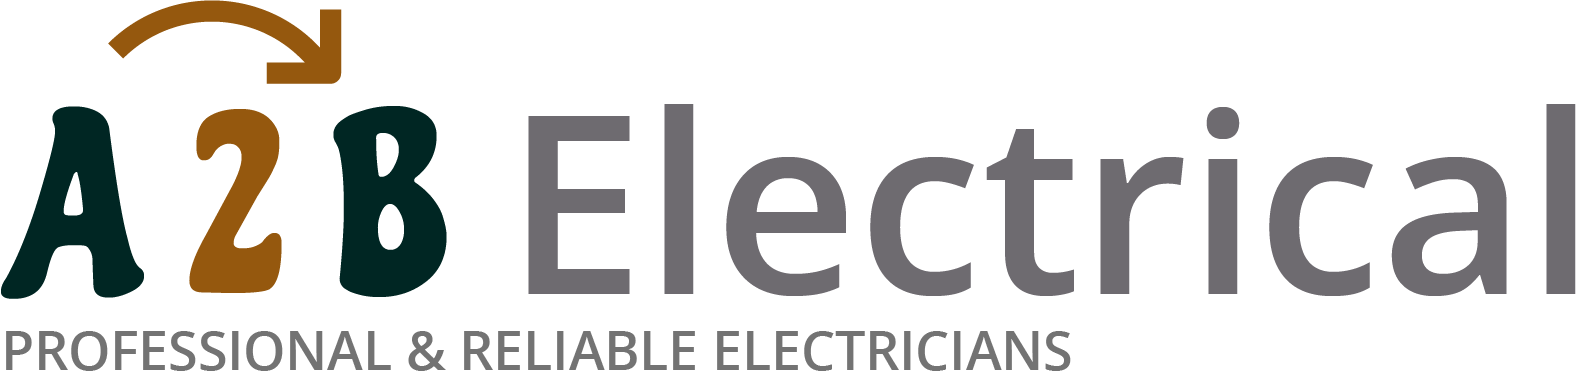 If you have electrical wiring problems in North Harrow, we can provide an electrician to have a look for you.